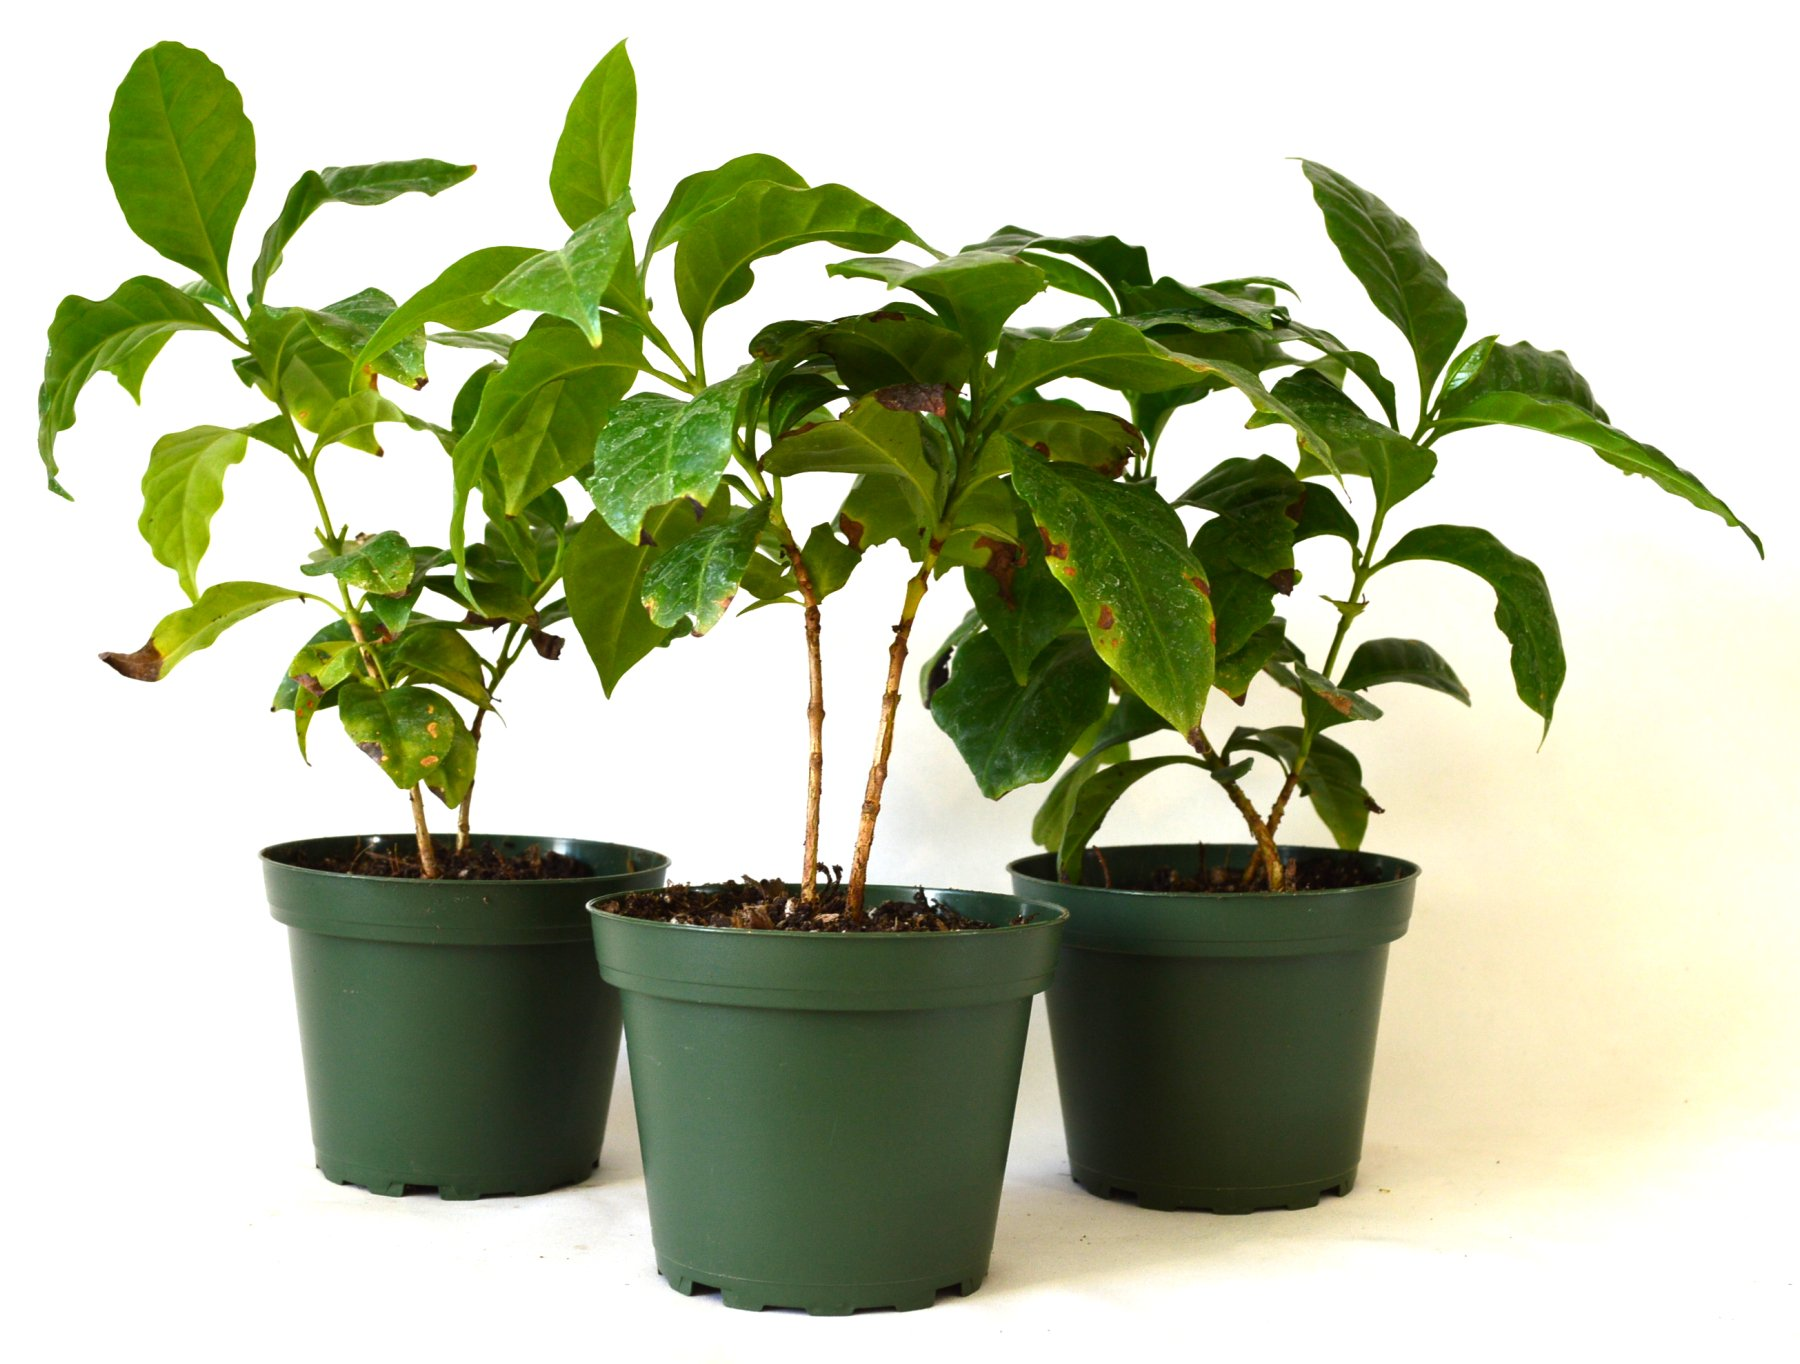 9Greenbox Arabica Coffee Plant Pot Set, 3 Inch x 4 Inch, (Pack of 3)